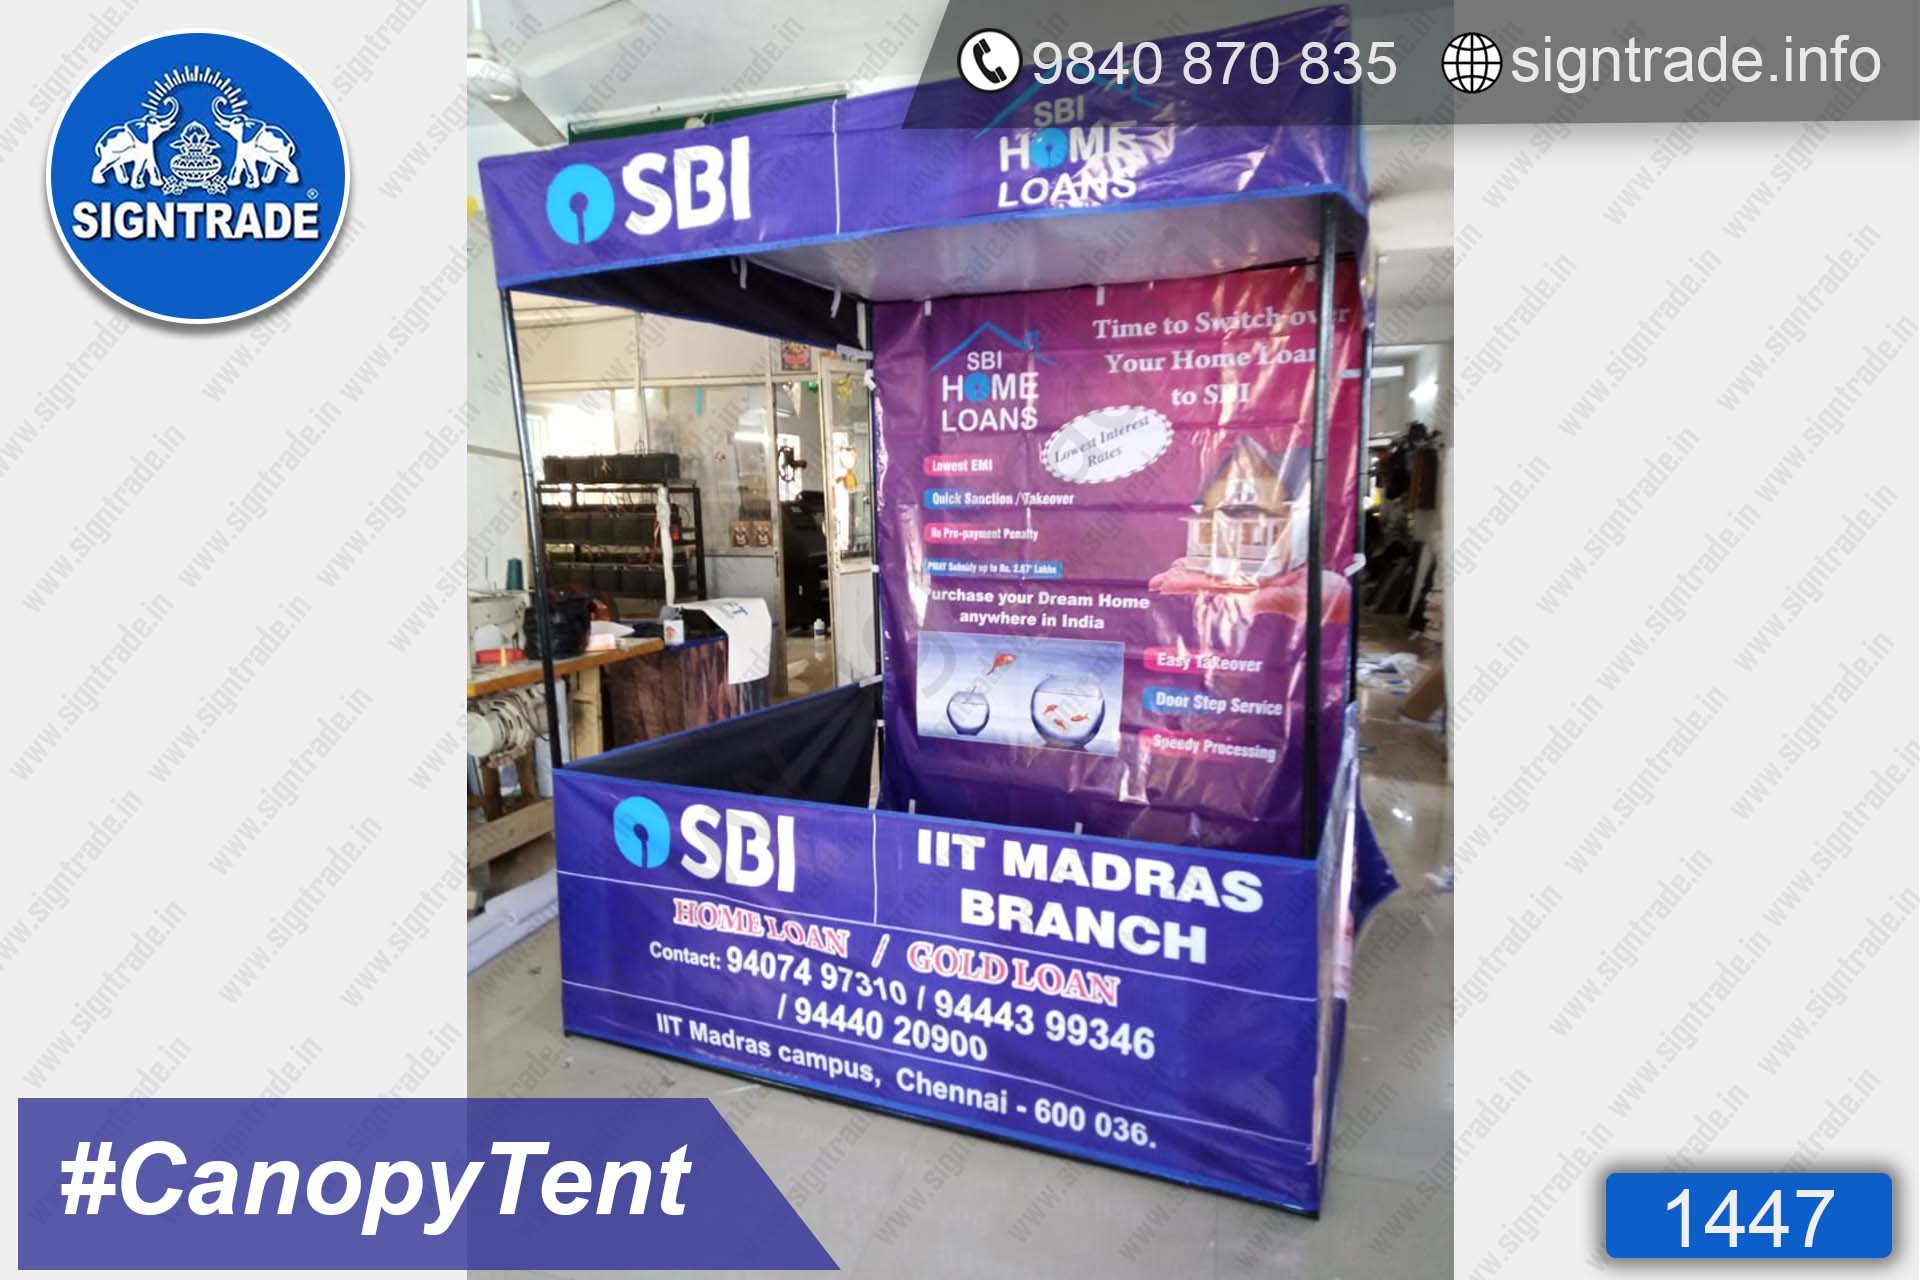 SBI Home Loan - 1447, Canopy tent, Flat roof tent, Promo tent, Promotional tent, Advertising tent, Promo Flag